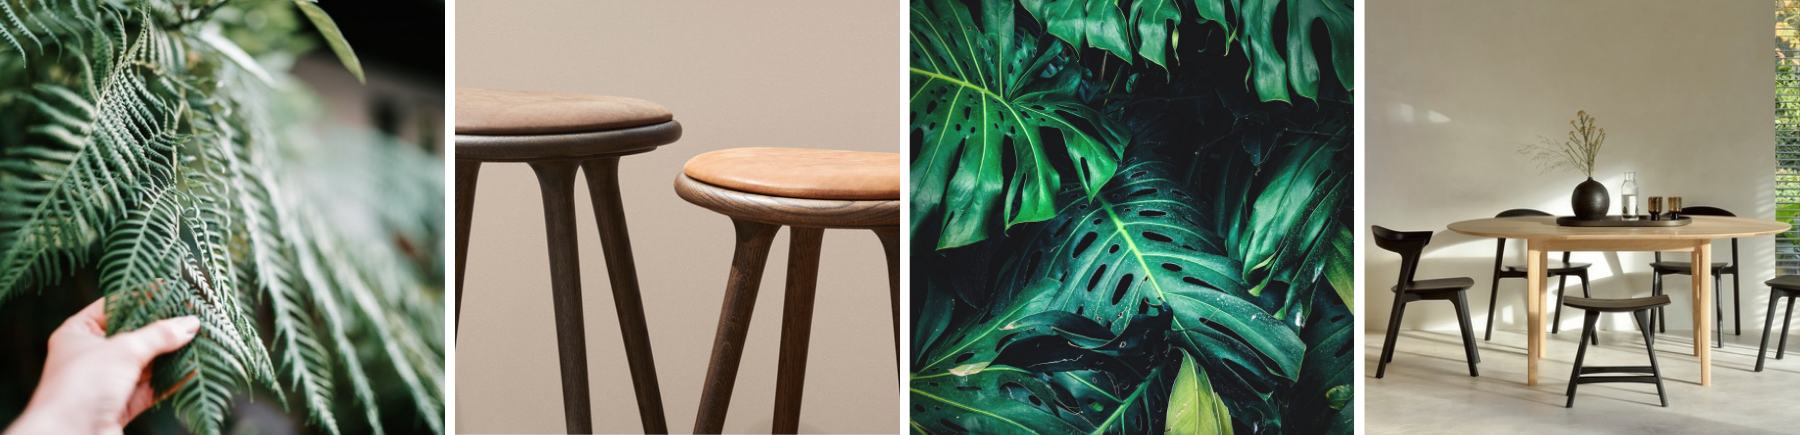 Mater | Sustainable Wood Furniture Seating